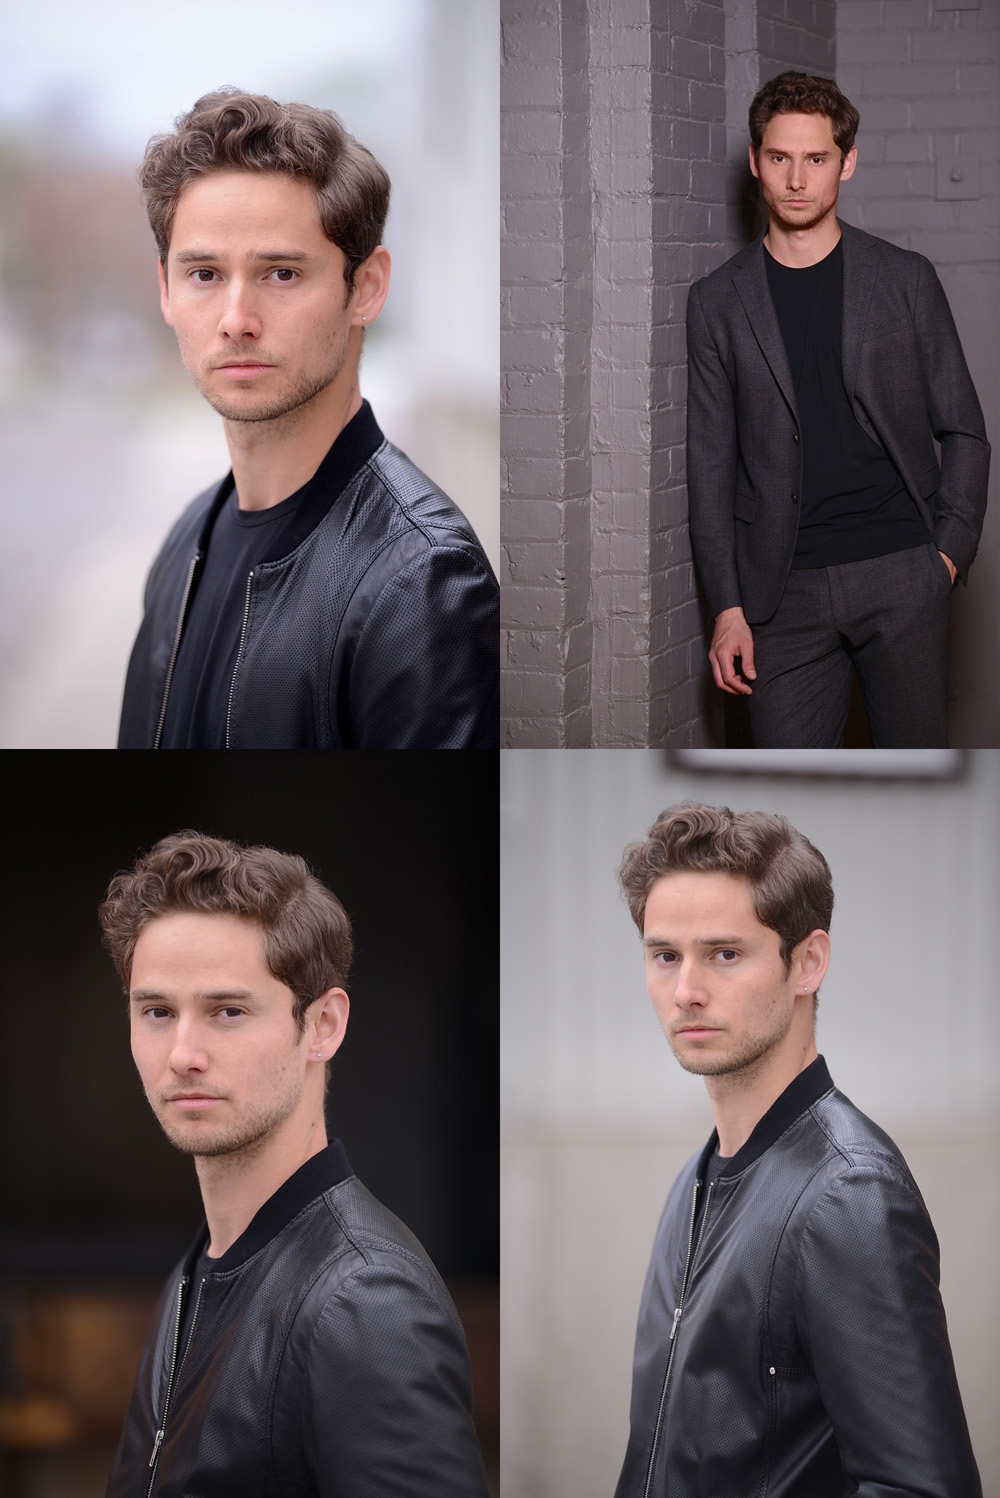 actor toronto headshot head shot photo photographer actor model fashion canada